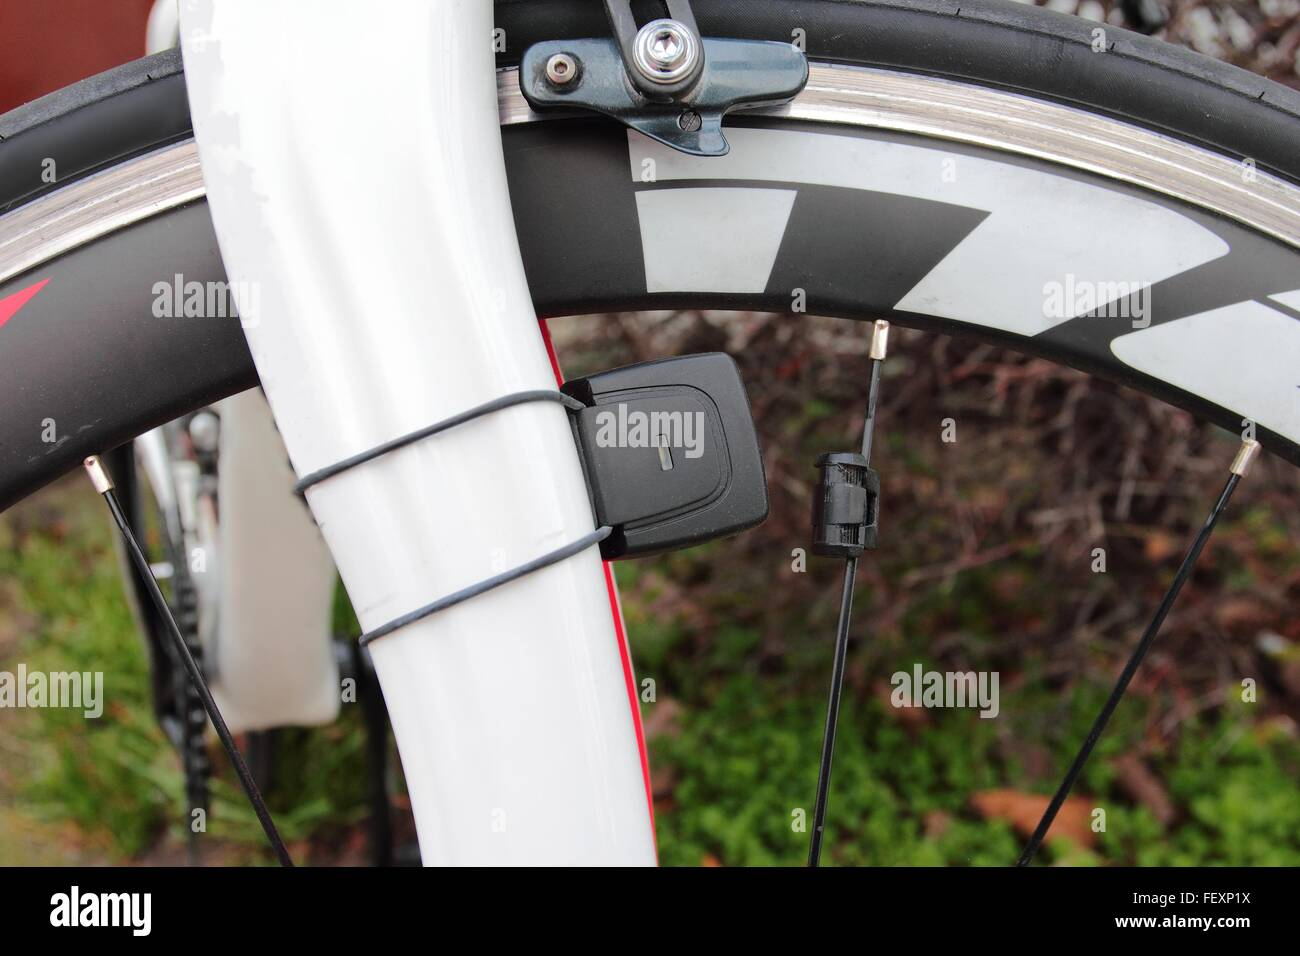 Detail of bike wheel with brakes and speed measure equipment - Stock Image